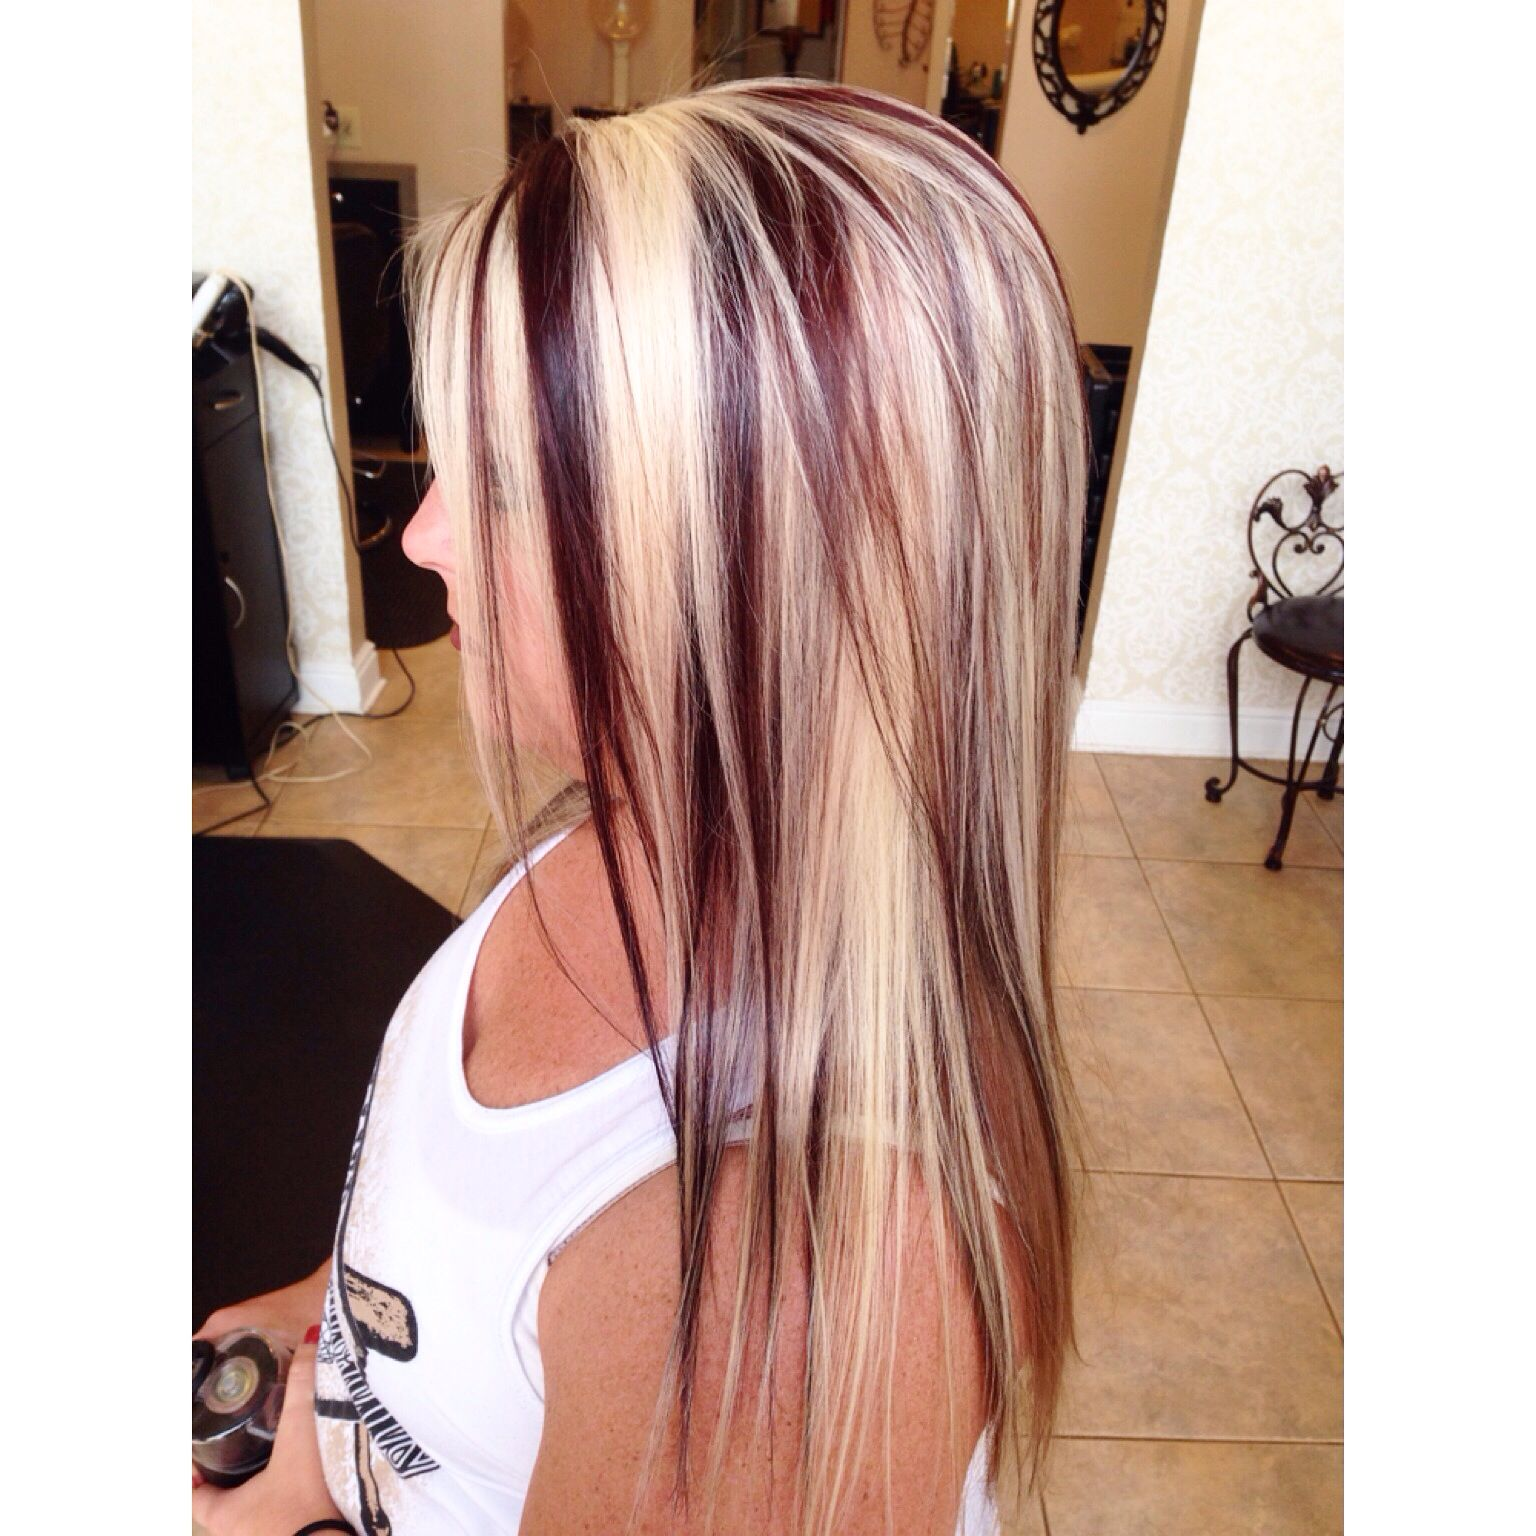 Highlights with redviolet lowlights by brittany at stouts salon in